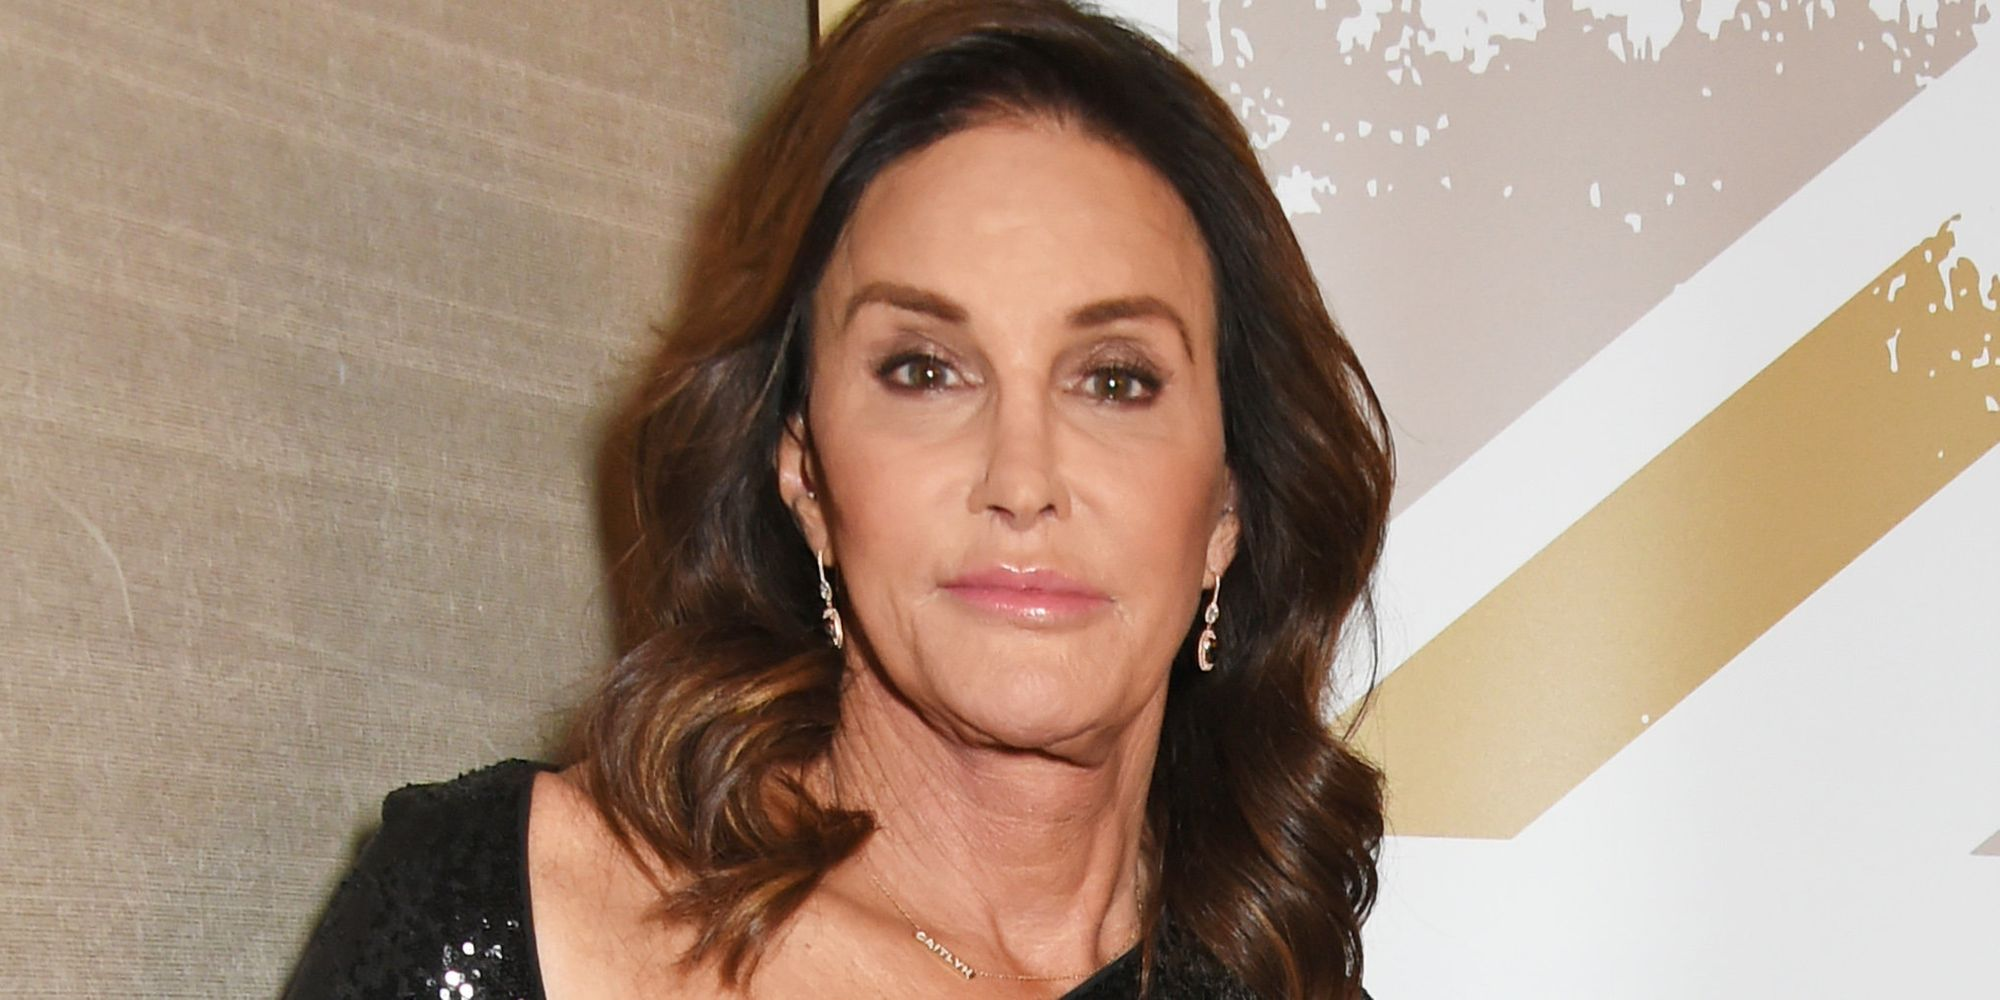 Caitlyn Jenner States There's Nothing She Wishes She'd Done Differently, Praising Supportive Family